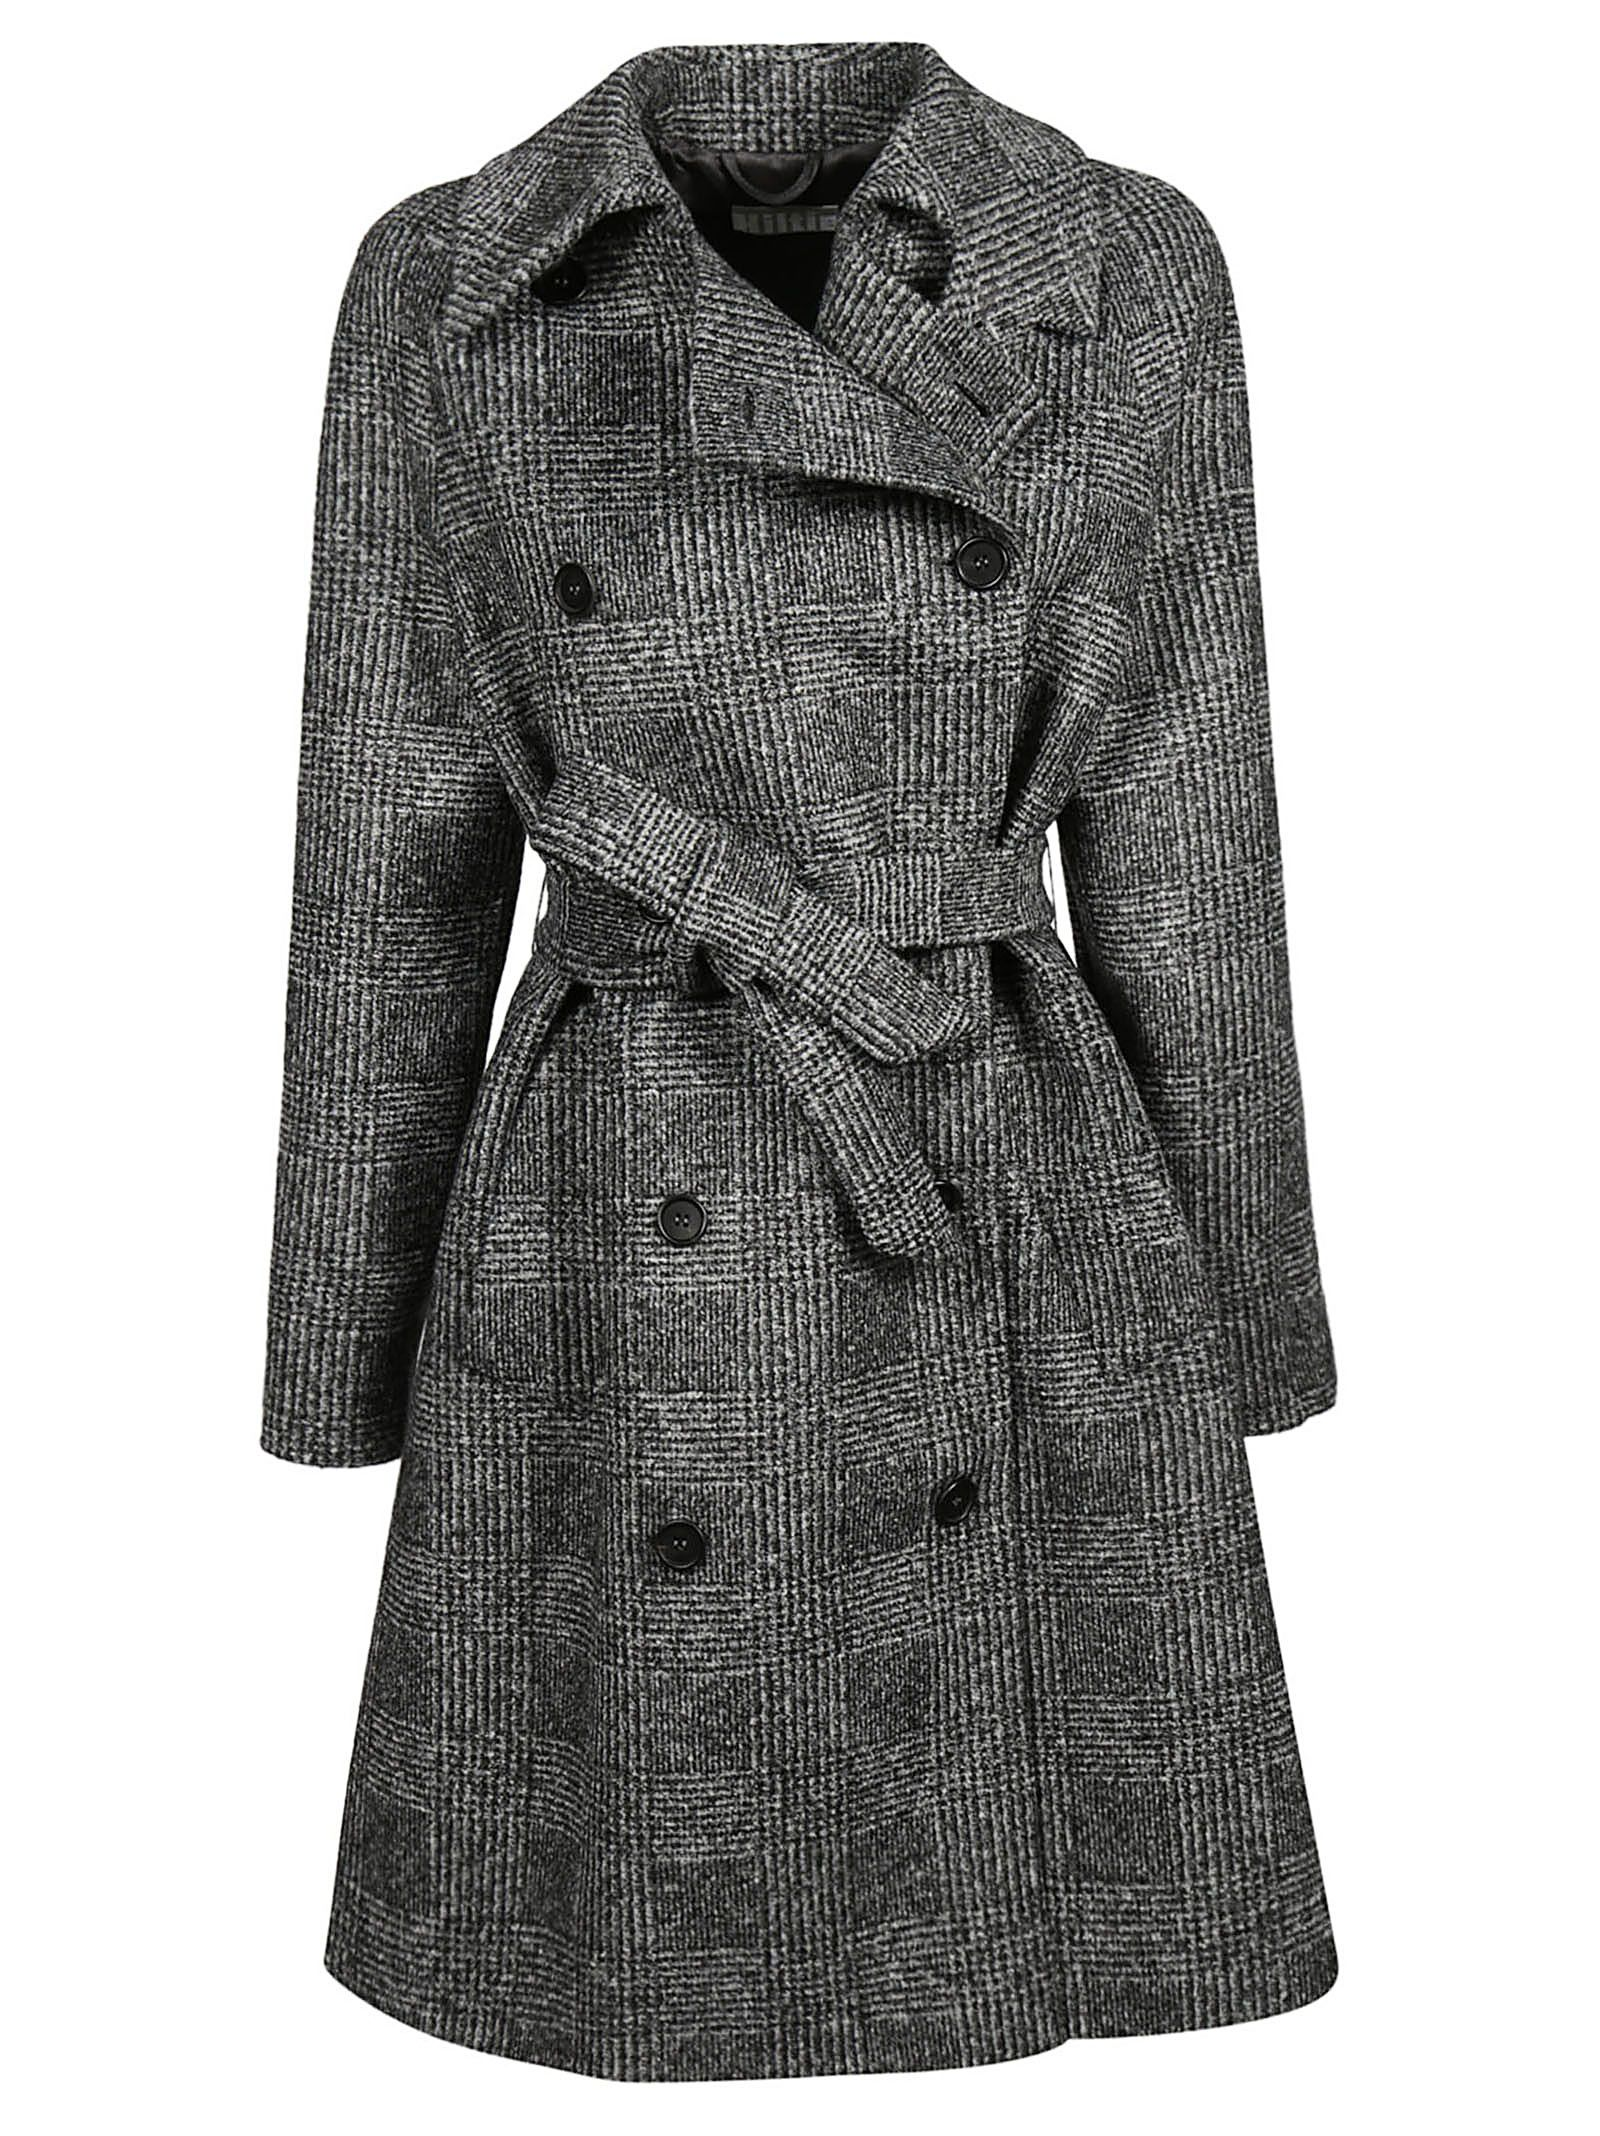 KILTIE & CO. Double Breasted Coat in Nero Grigio